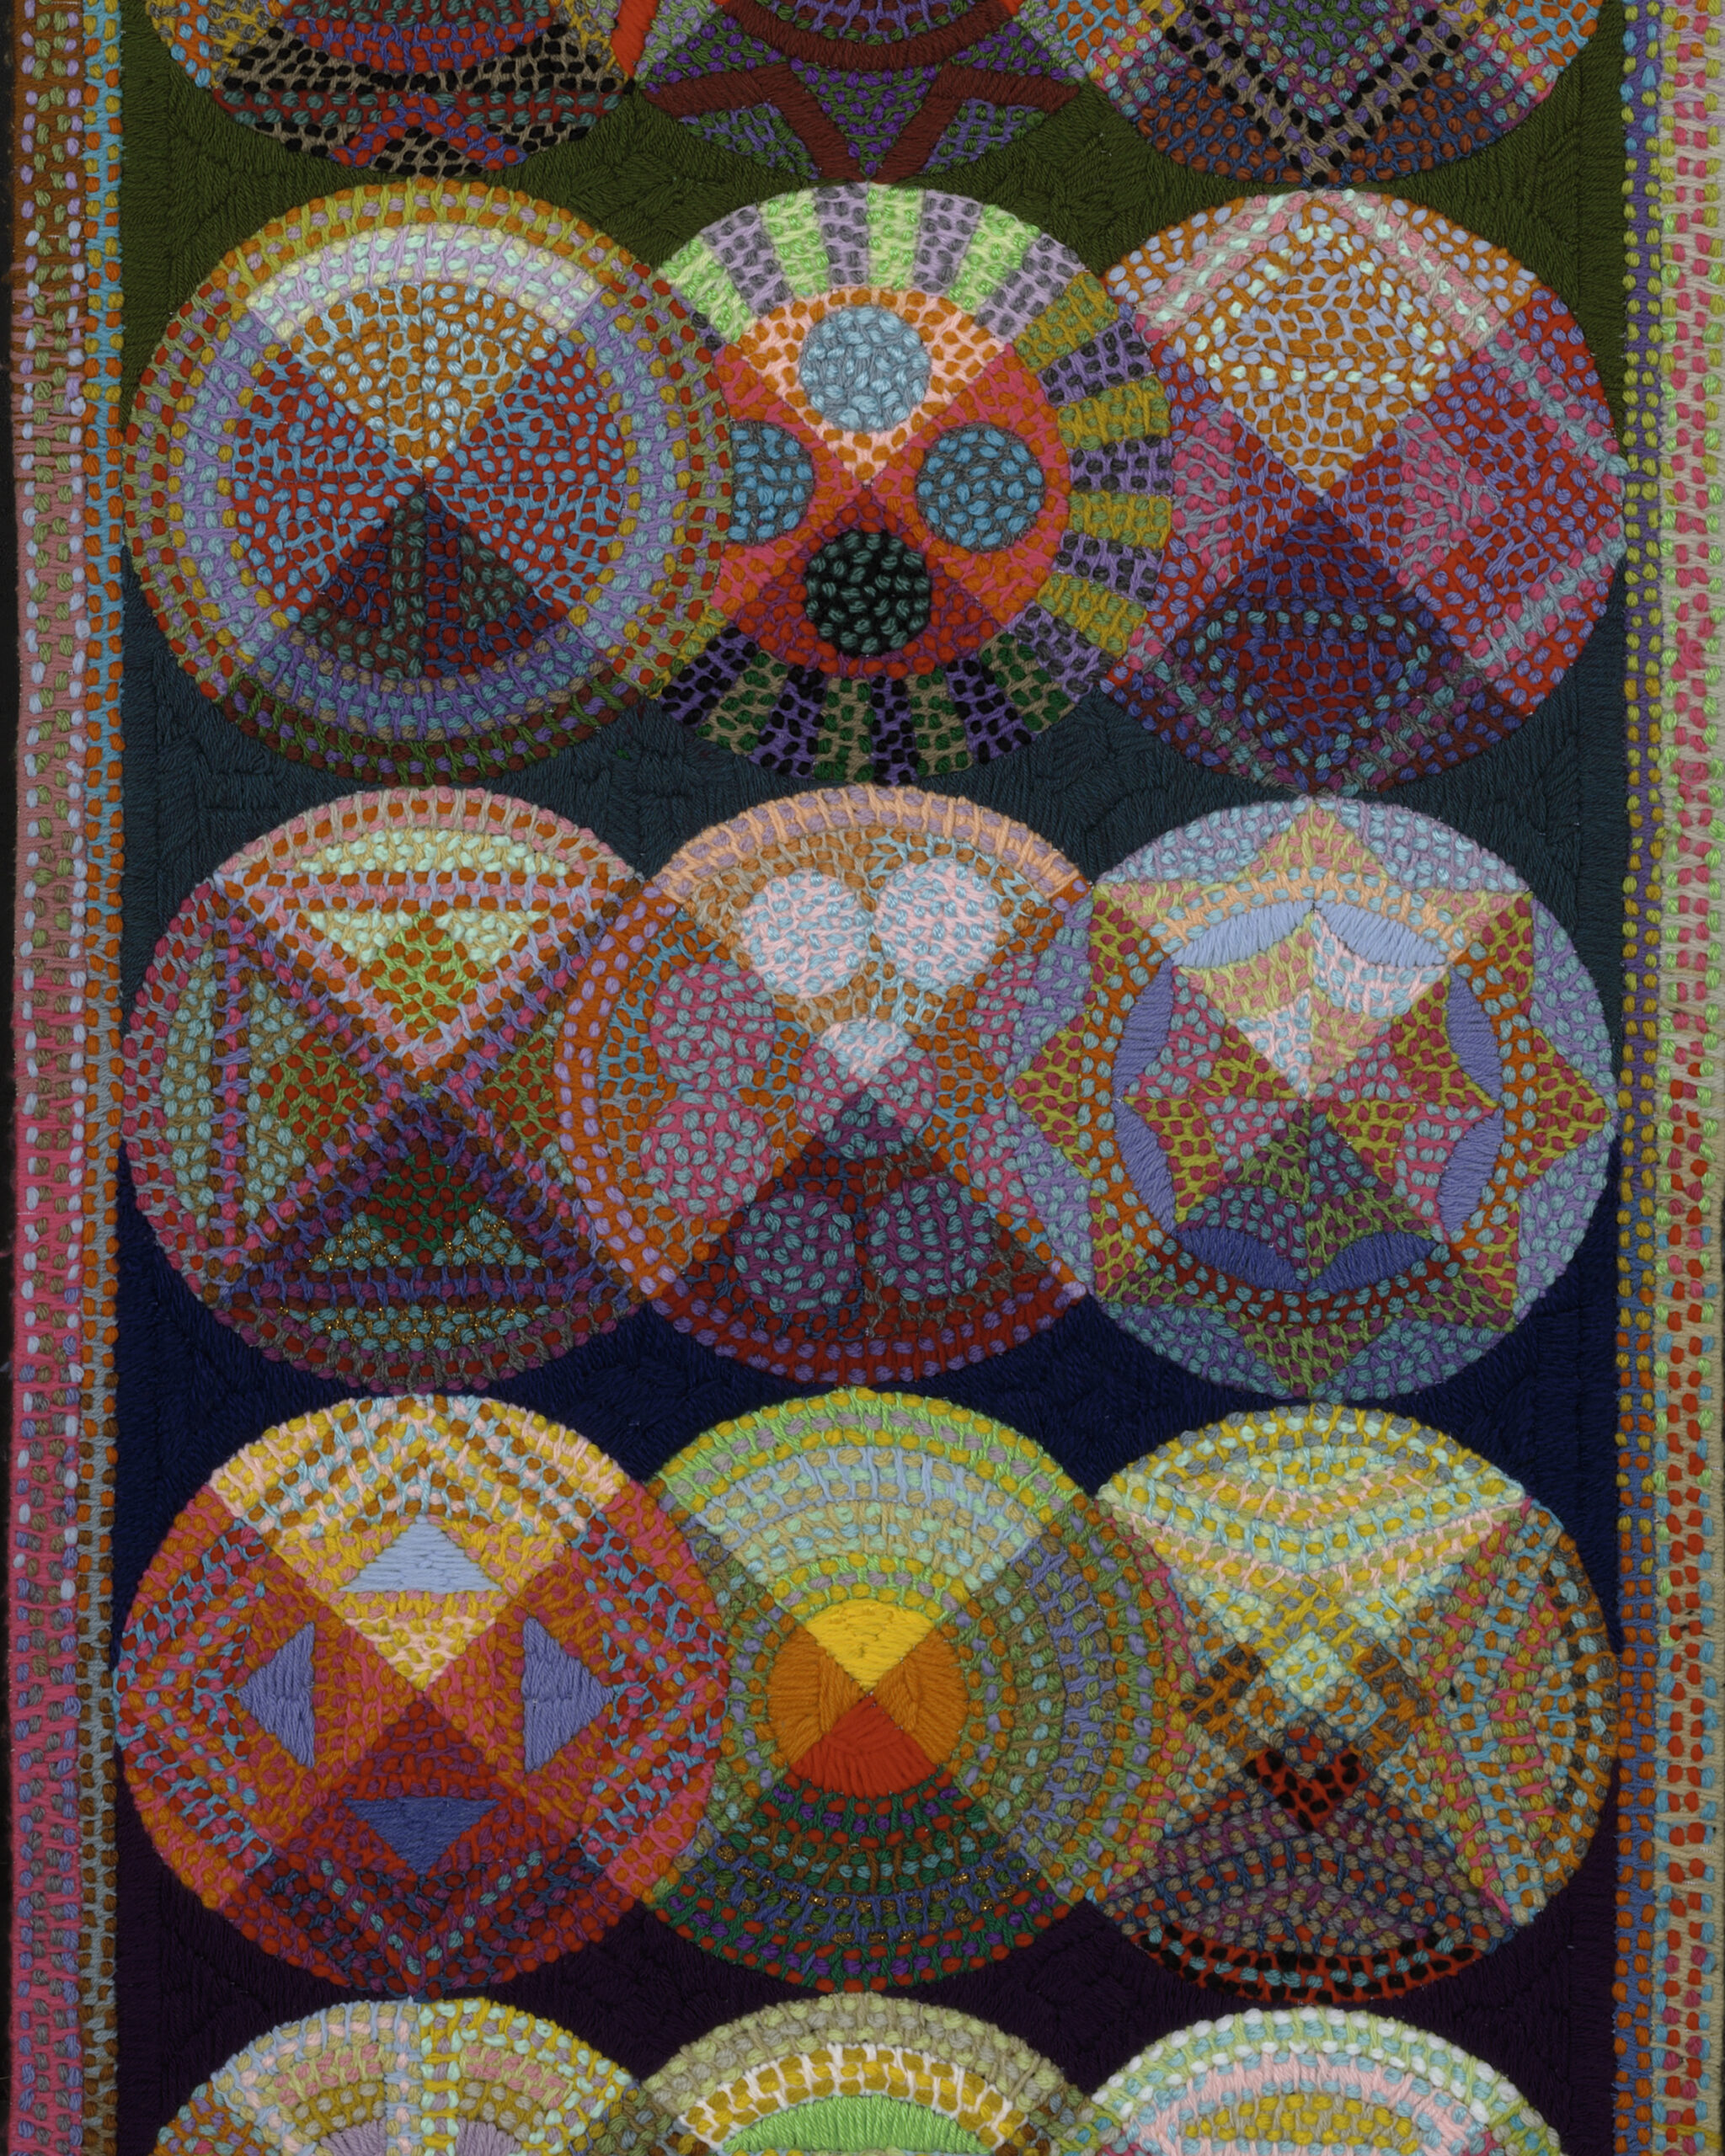 Liz Whitney Quisgard. Wall Hanging: 42 Circles, 2005. The Baltimore Museum of Art: Gift of the Artist, BMA 2014.20.